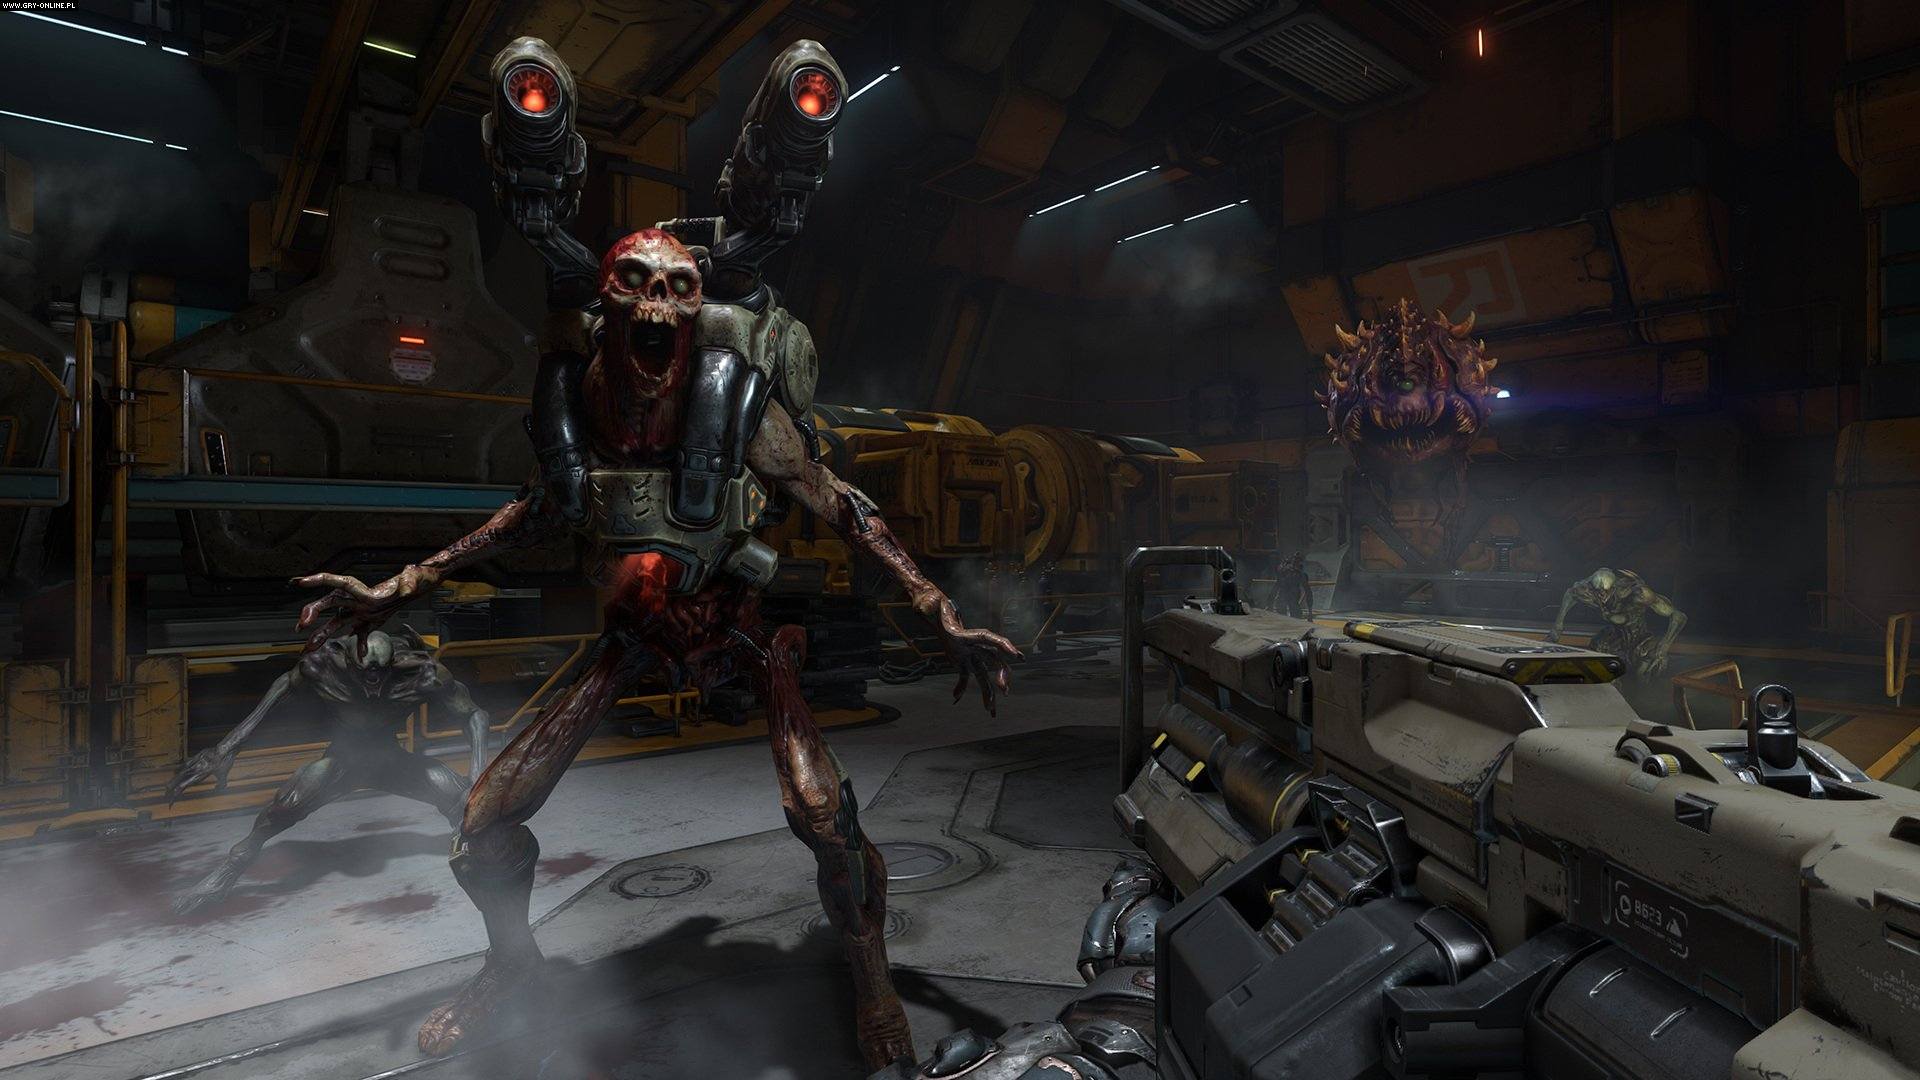 Doom PC, PS4, XONE Games Image 6/39, id Software, Bethesda Softworks